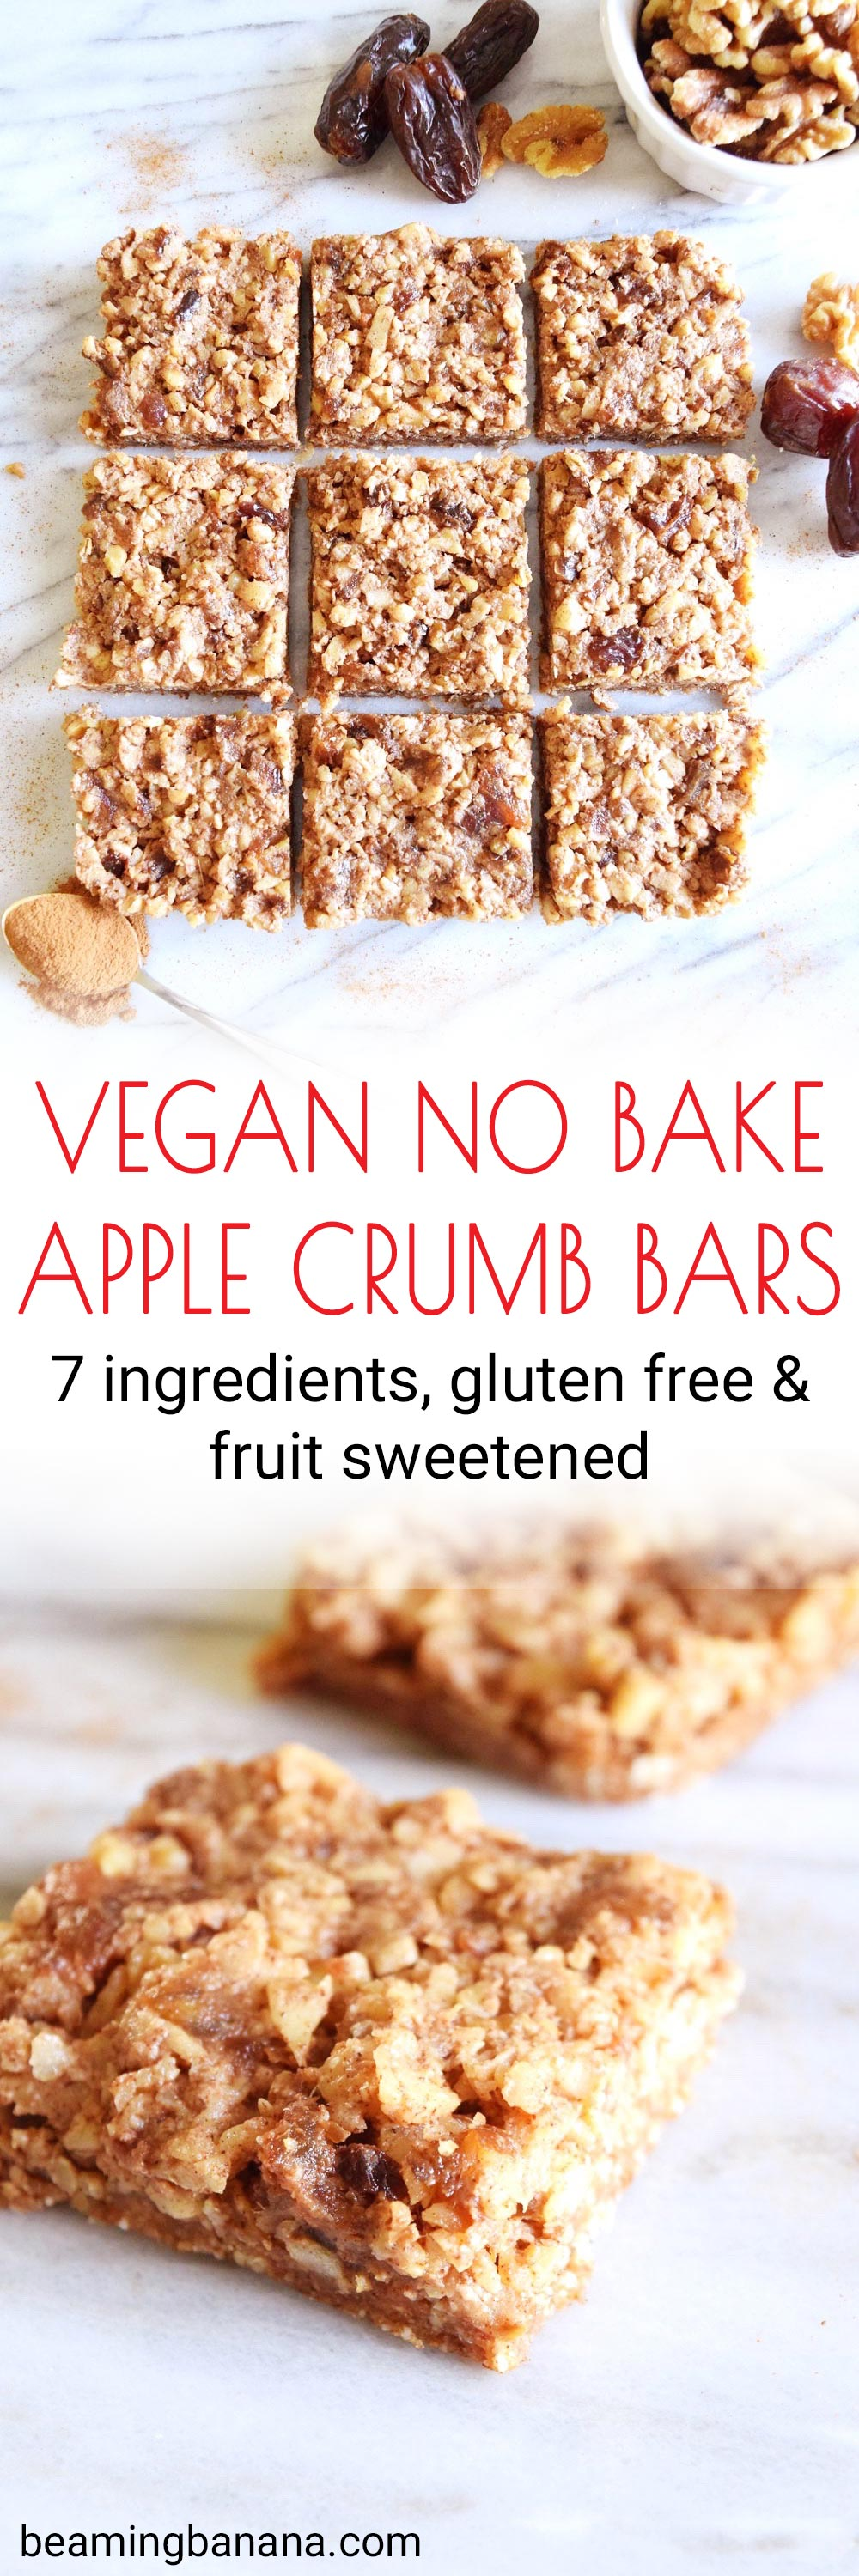 Vegan No Bake Apple Crumb Bars